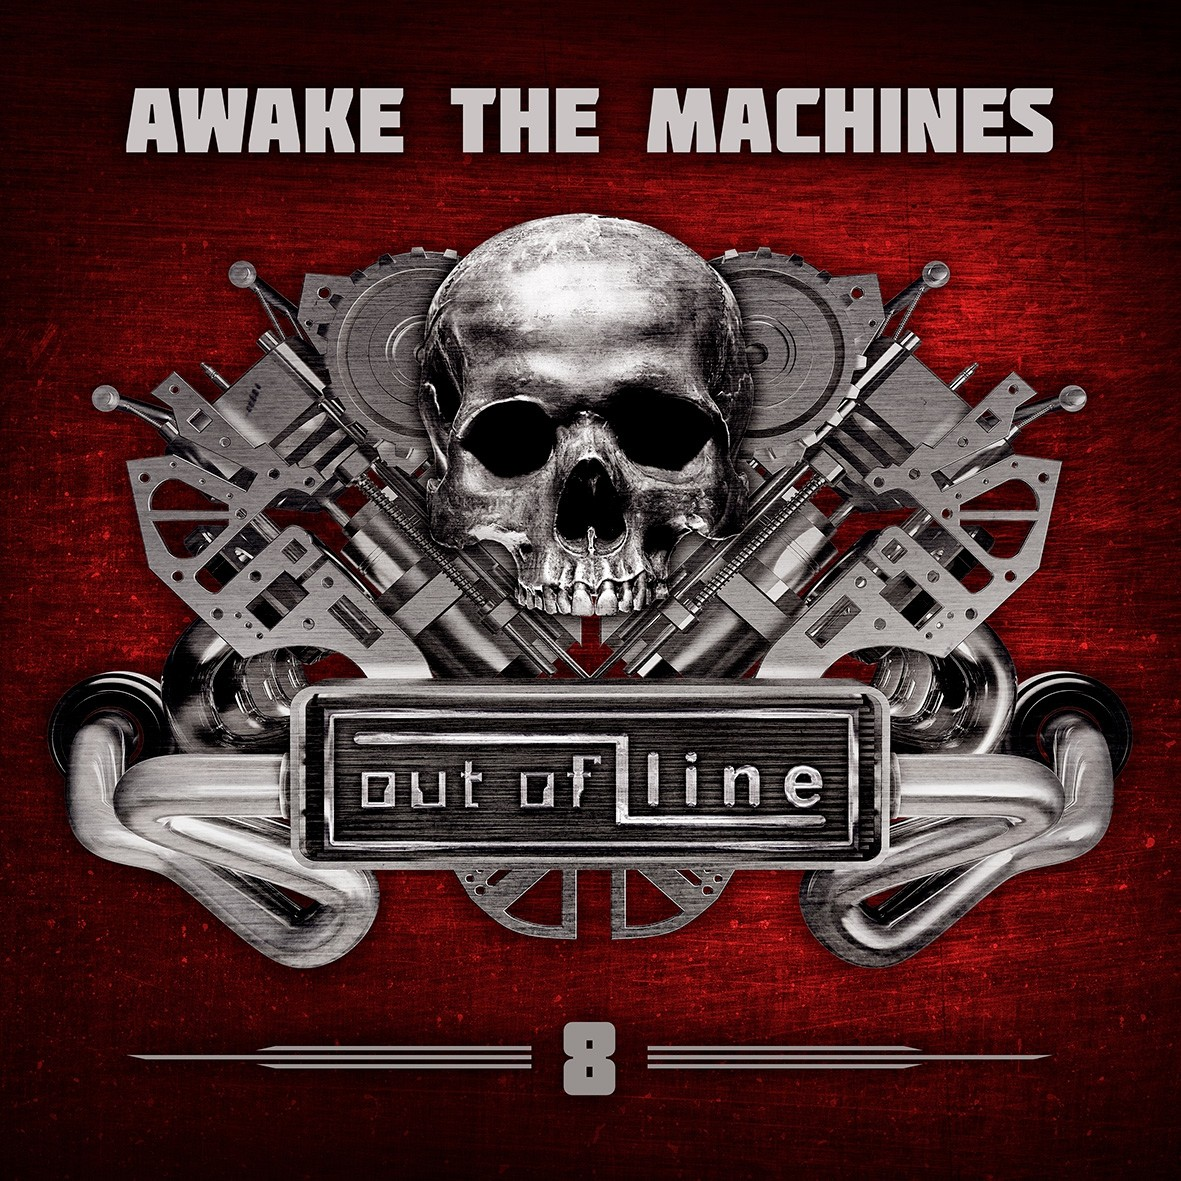 V.A. - Awake The Machines Vol. 8 - 3CD